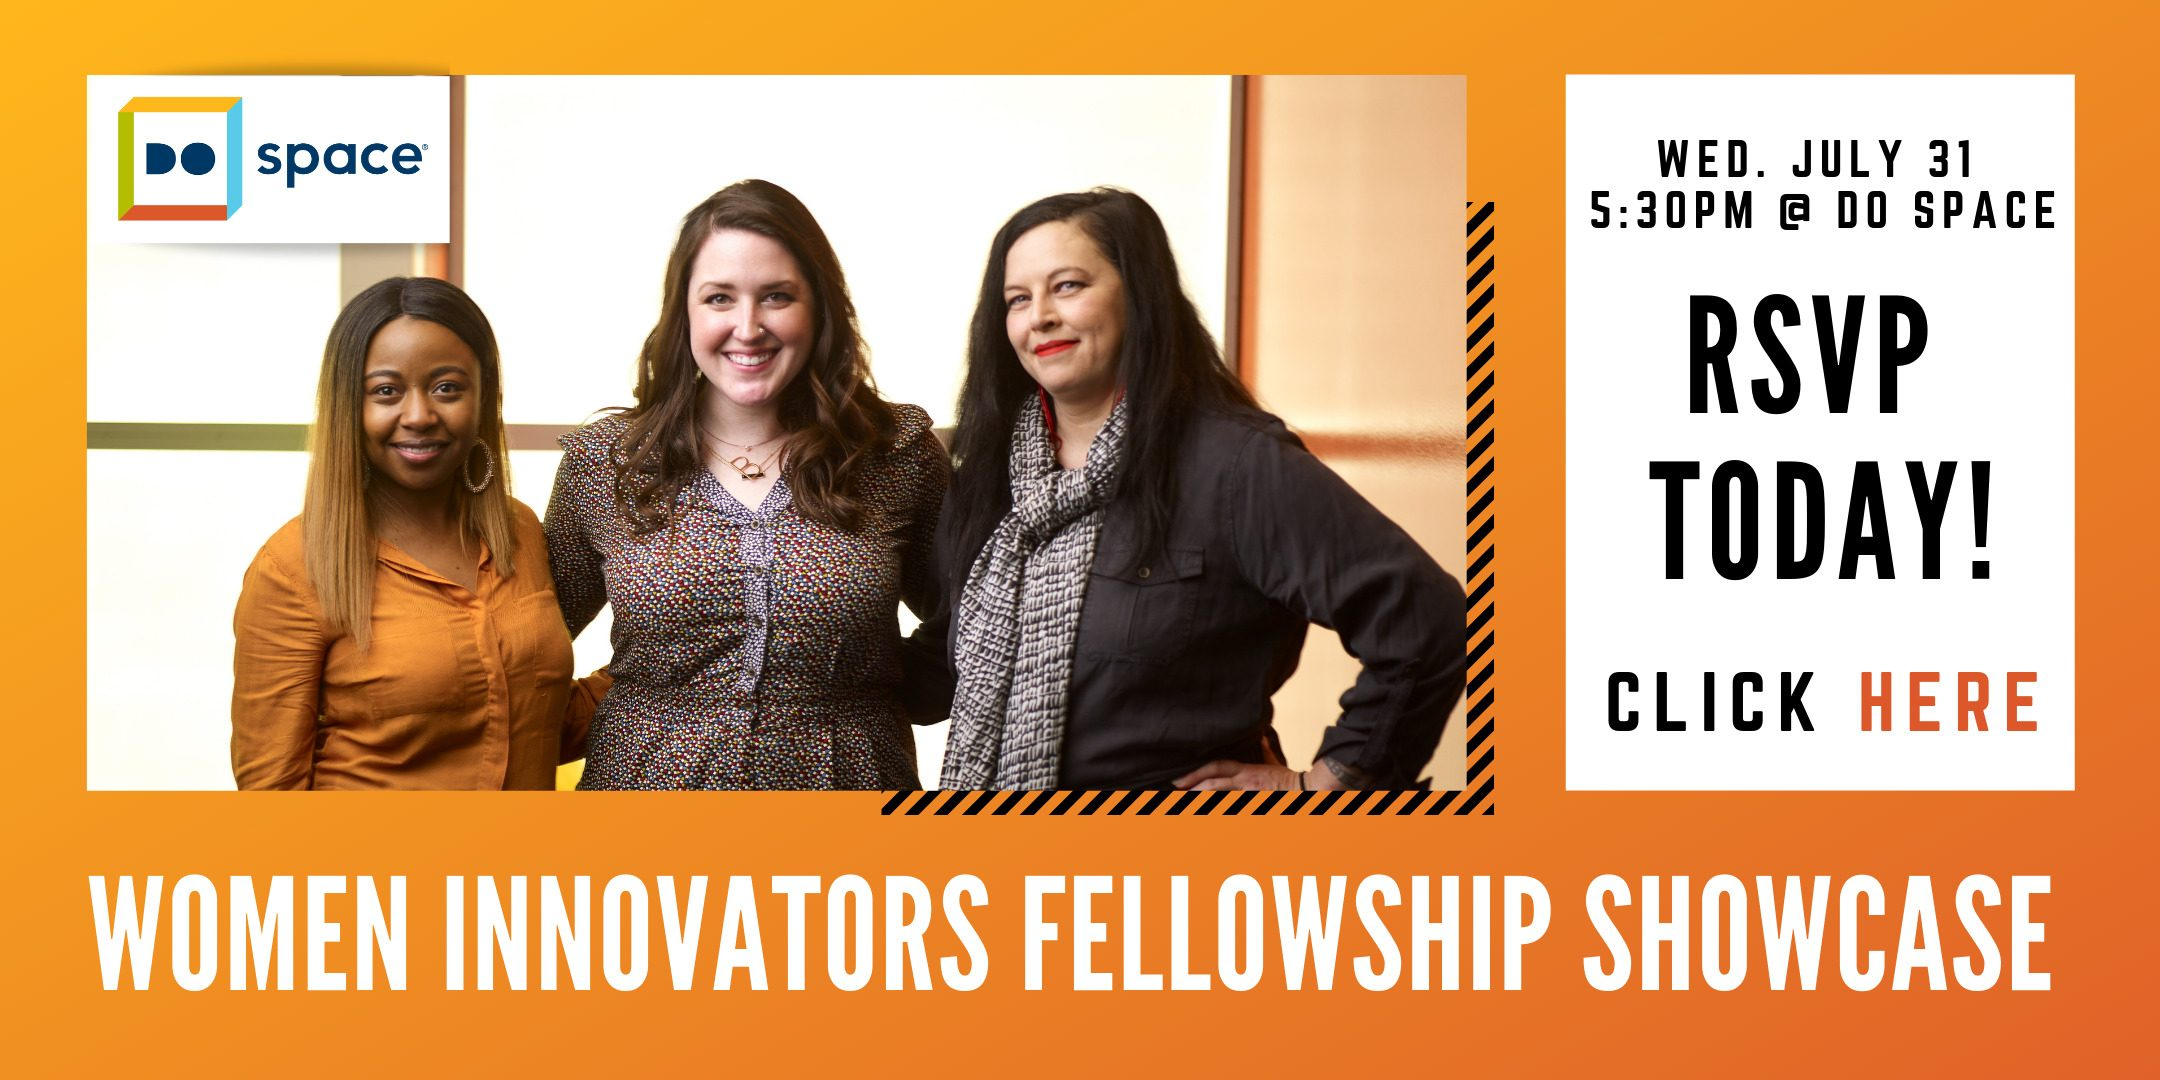 Women Innovators Fellowship Showcase. Wed. July 31st, 5:30 p.m., Do Space. RSVP Today! Click here.